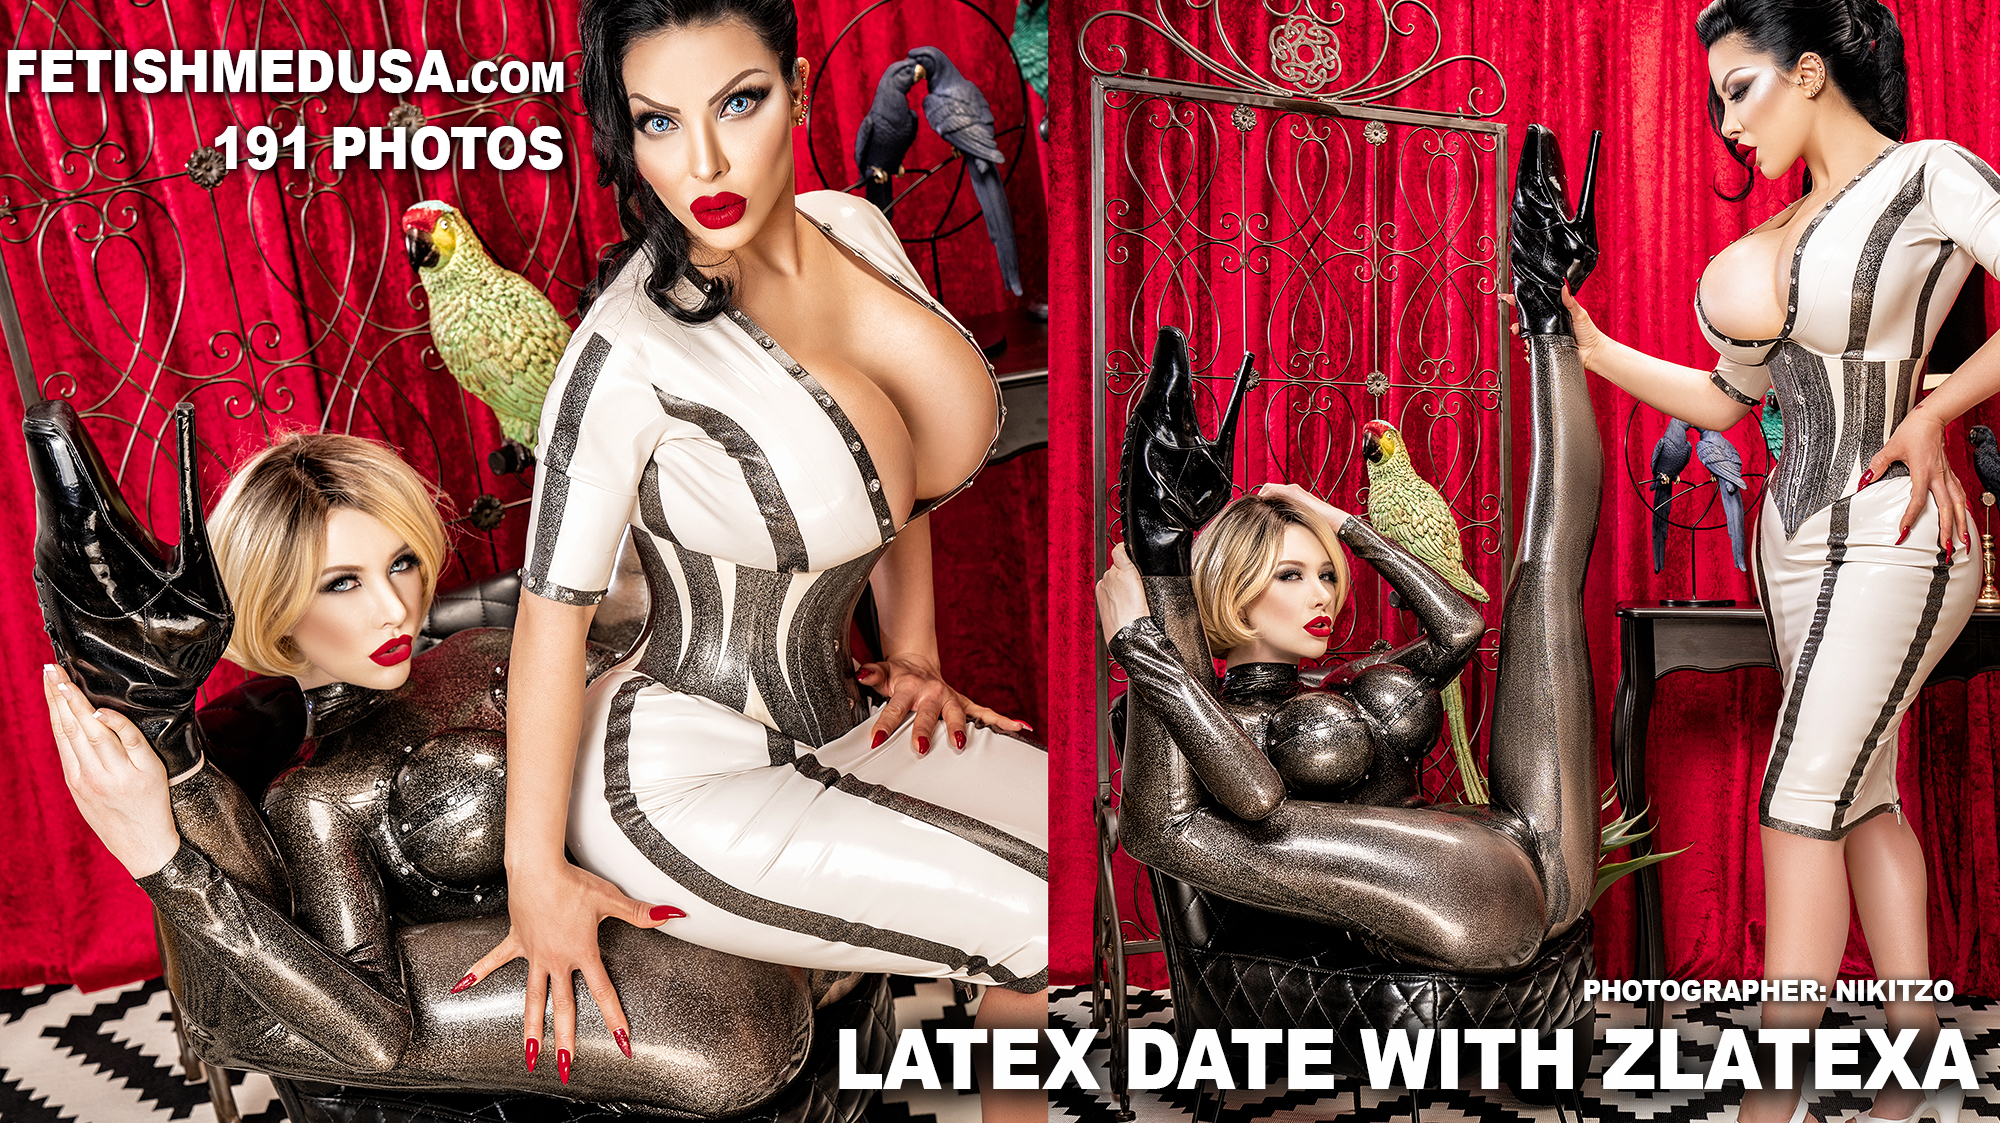 LATEX DATE WITH ZLATEXA